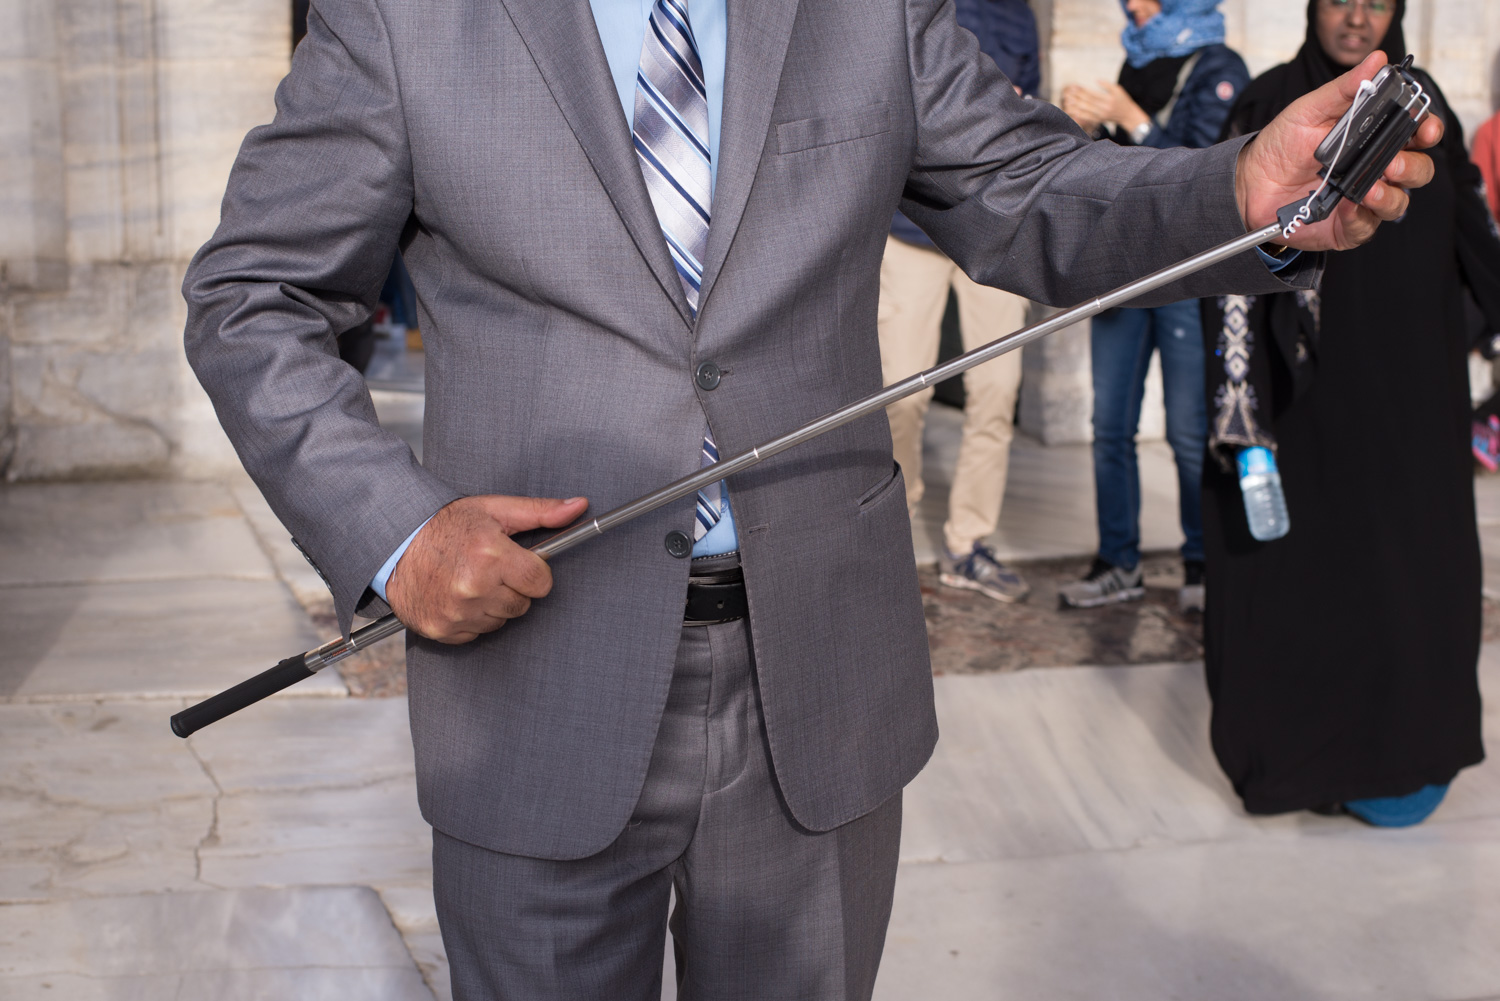 A man in a suit with a selfie stick